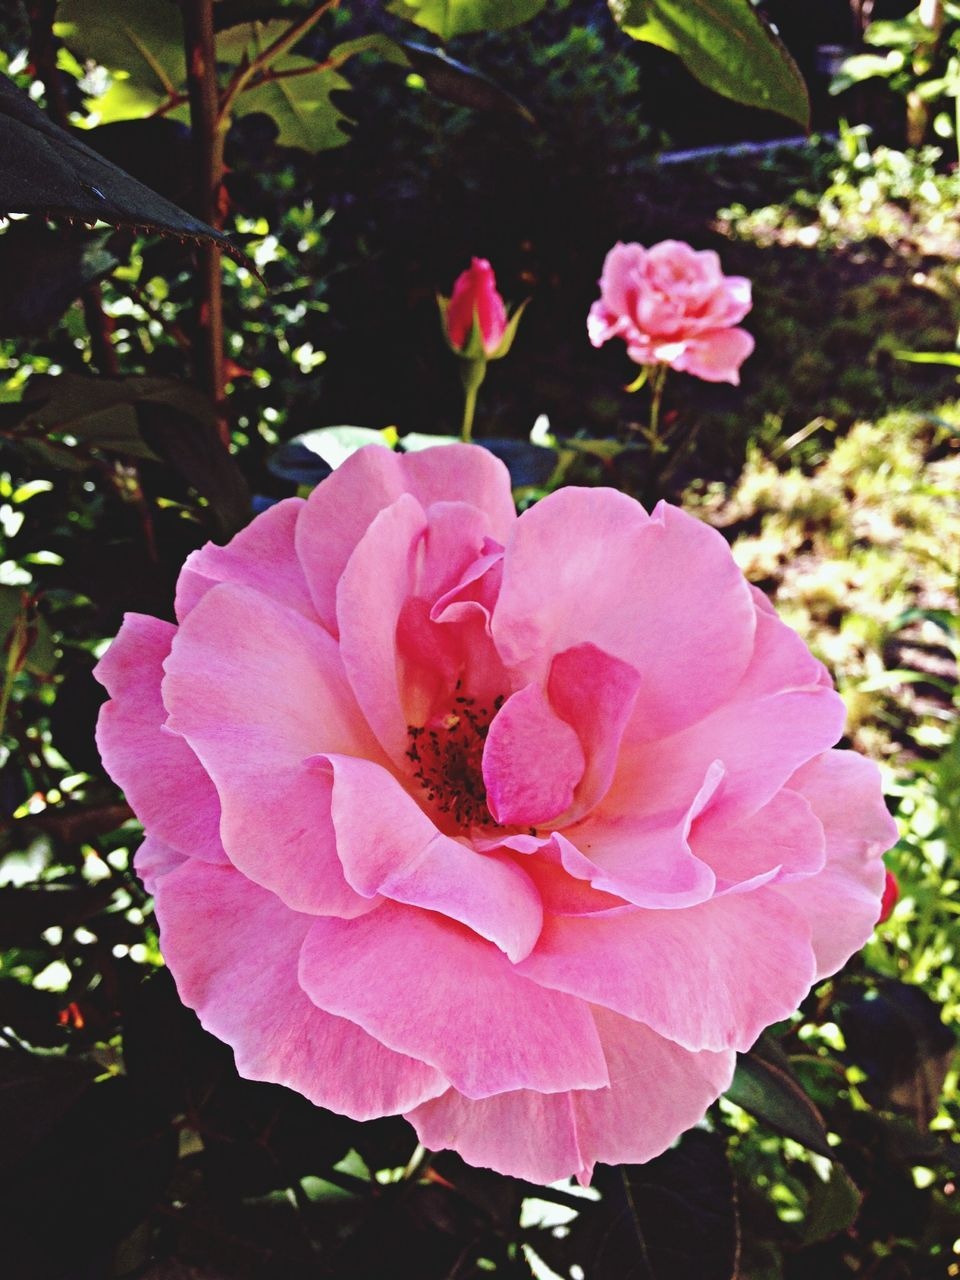 flower, petal, nature, beauty in nature, growth, pink color, plant, flower head, wild rose, fragility, blooming, no people, freshness, outdoors, day, close-up